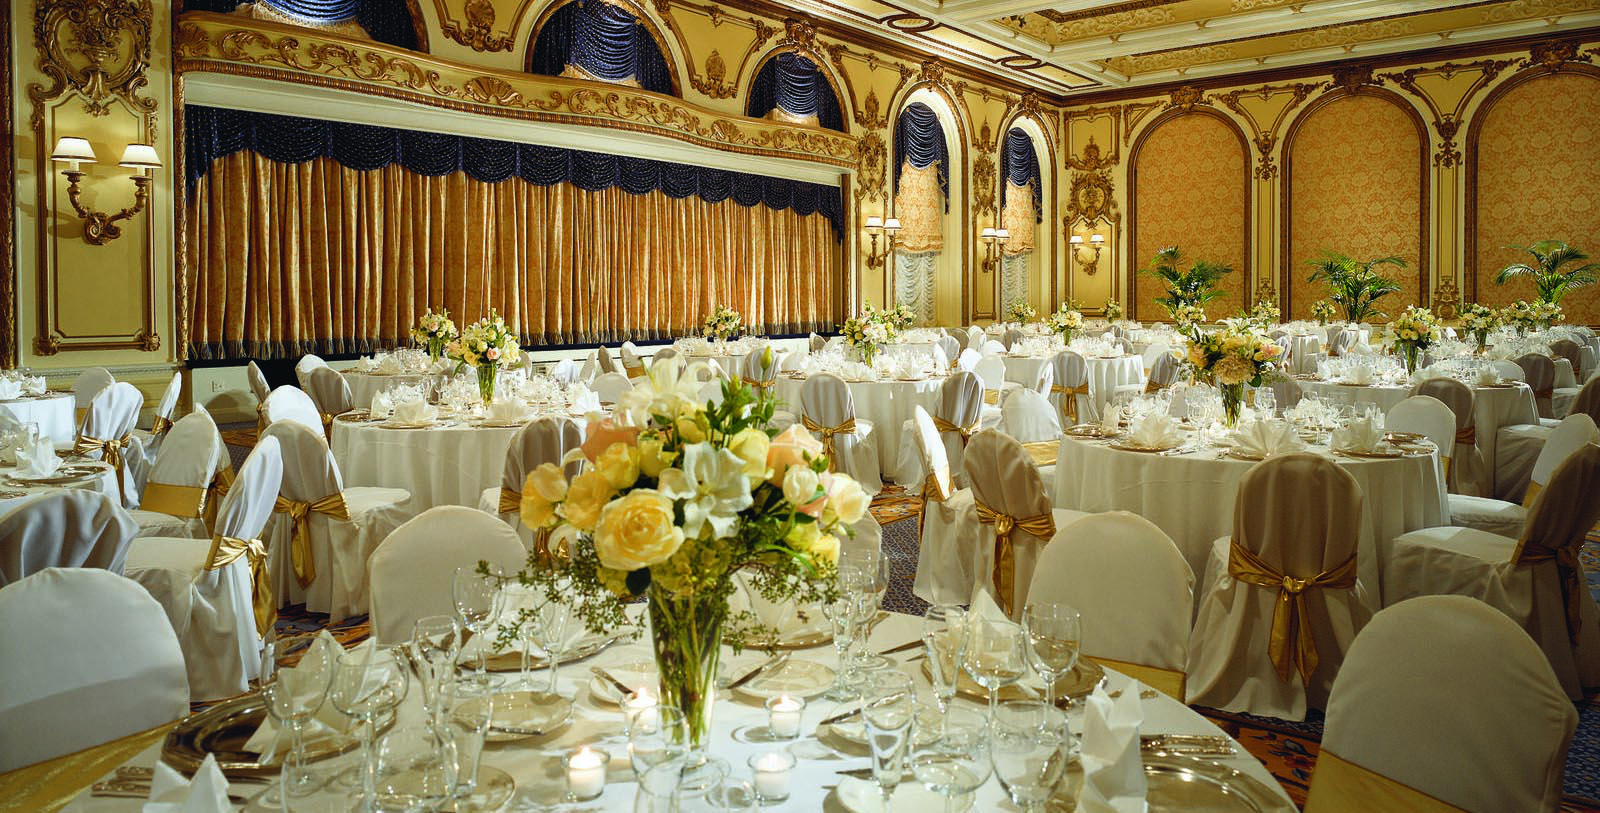 Image of Ballroom The Fairmont Hotel San Francisco, 1907, Member of Historic Hotels of America, in San Francisco, California, Experience